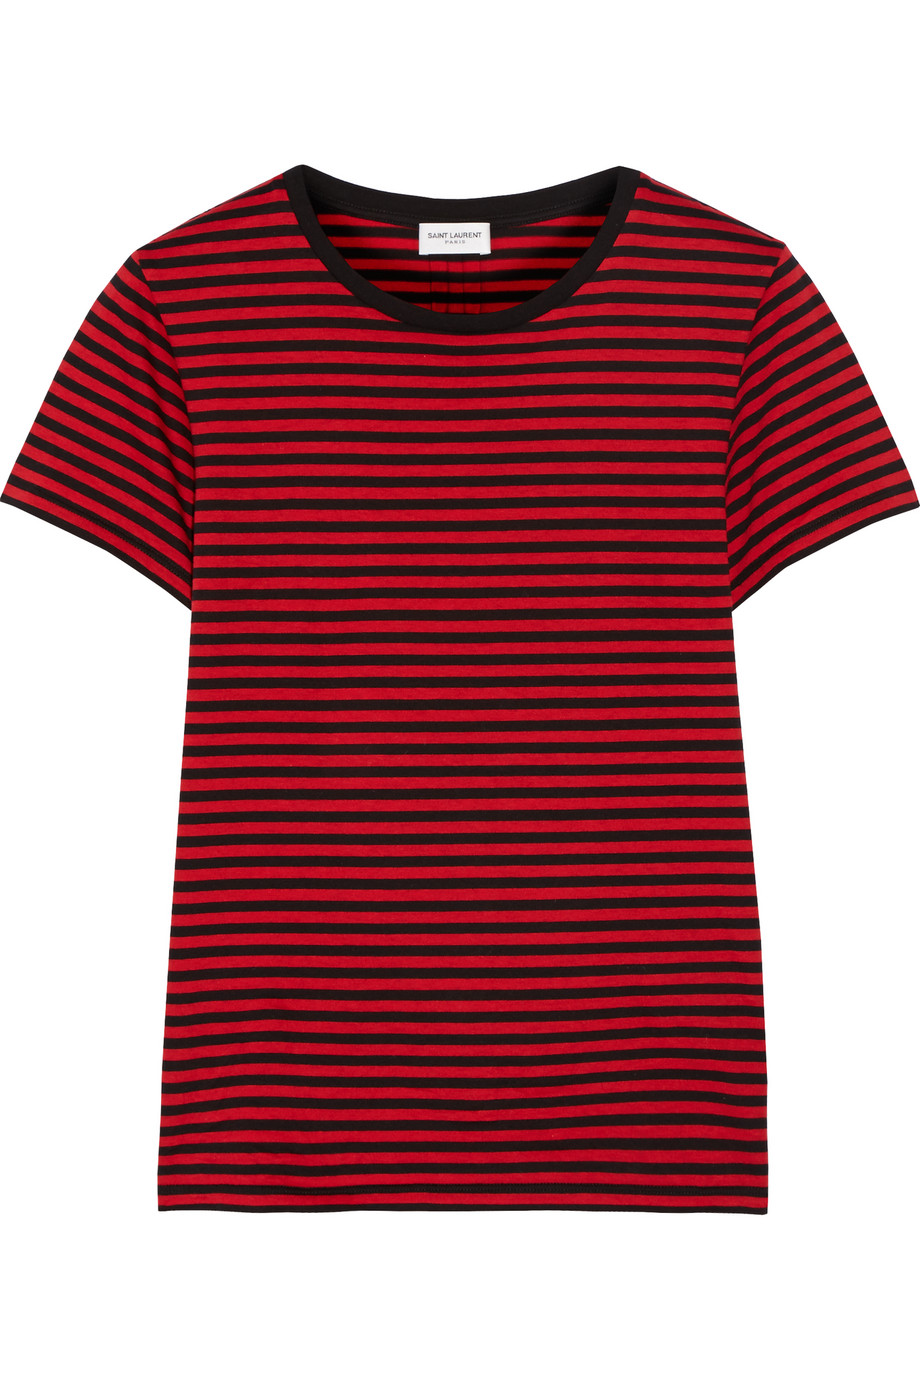 Saint Laurent Striped Cotton-Jersey T-Shirt, Red, Women's